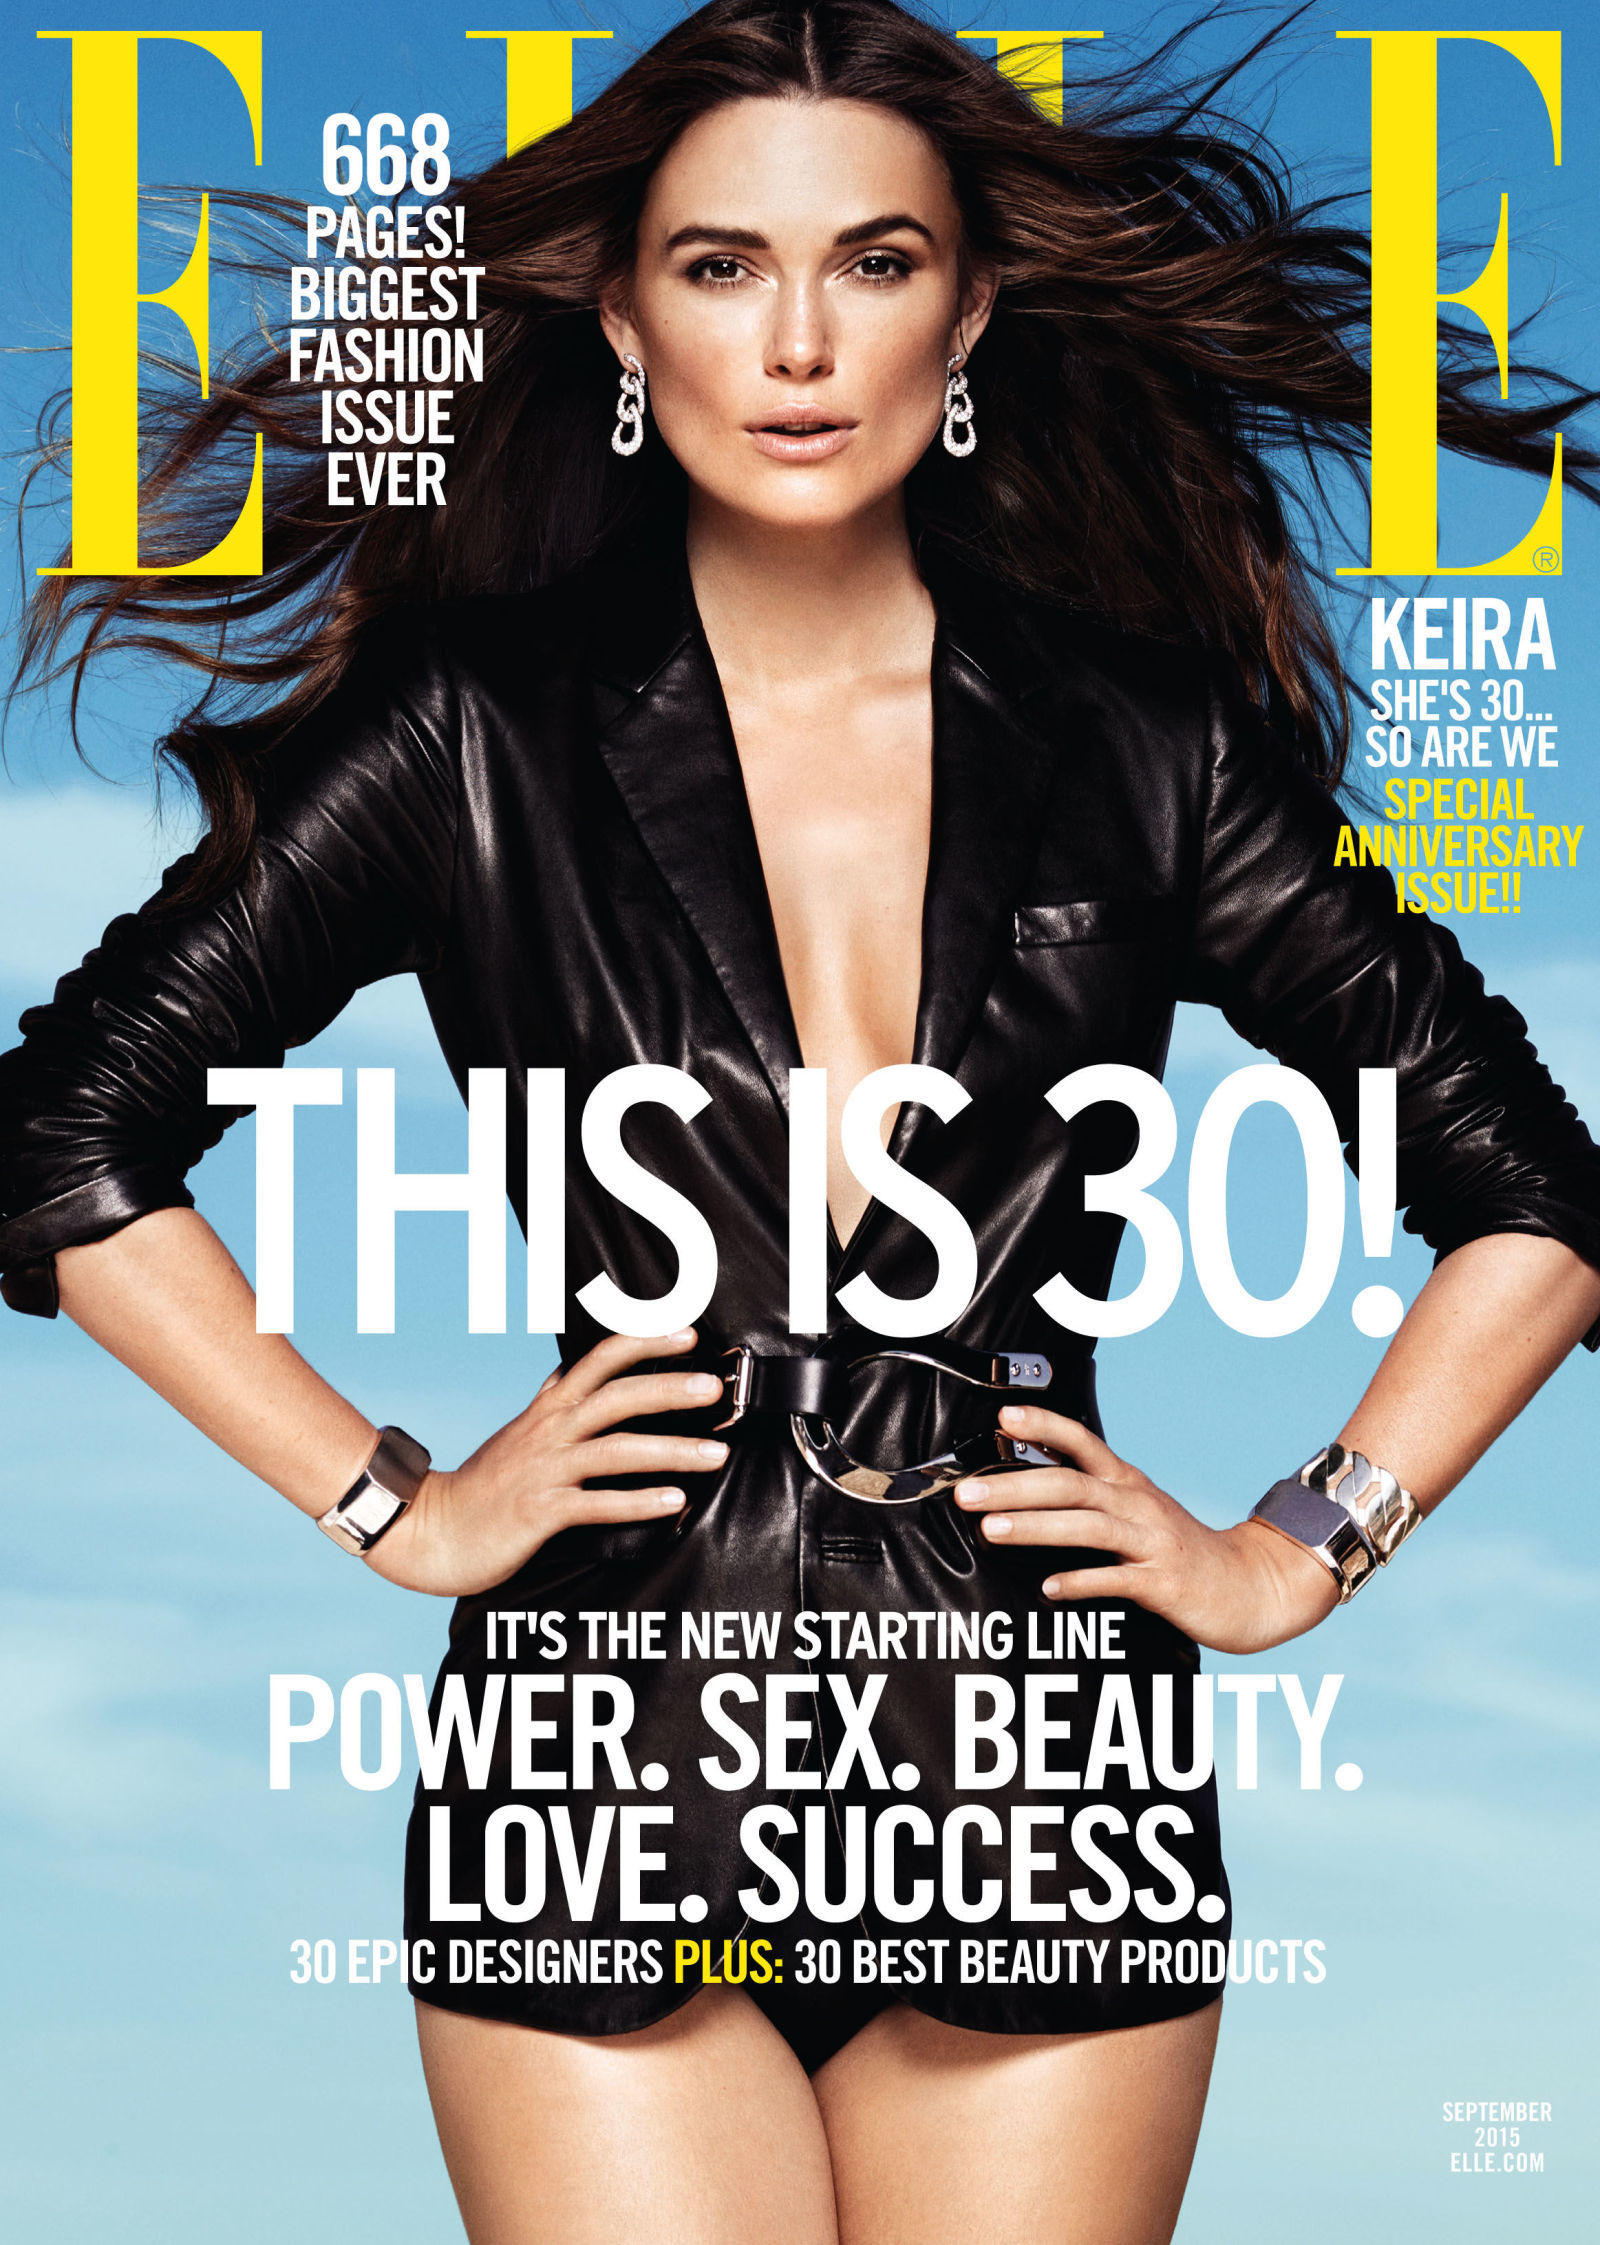 Keira Knightley on The Cover of Elle